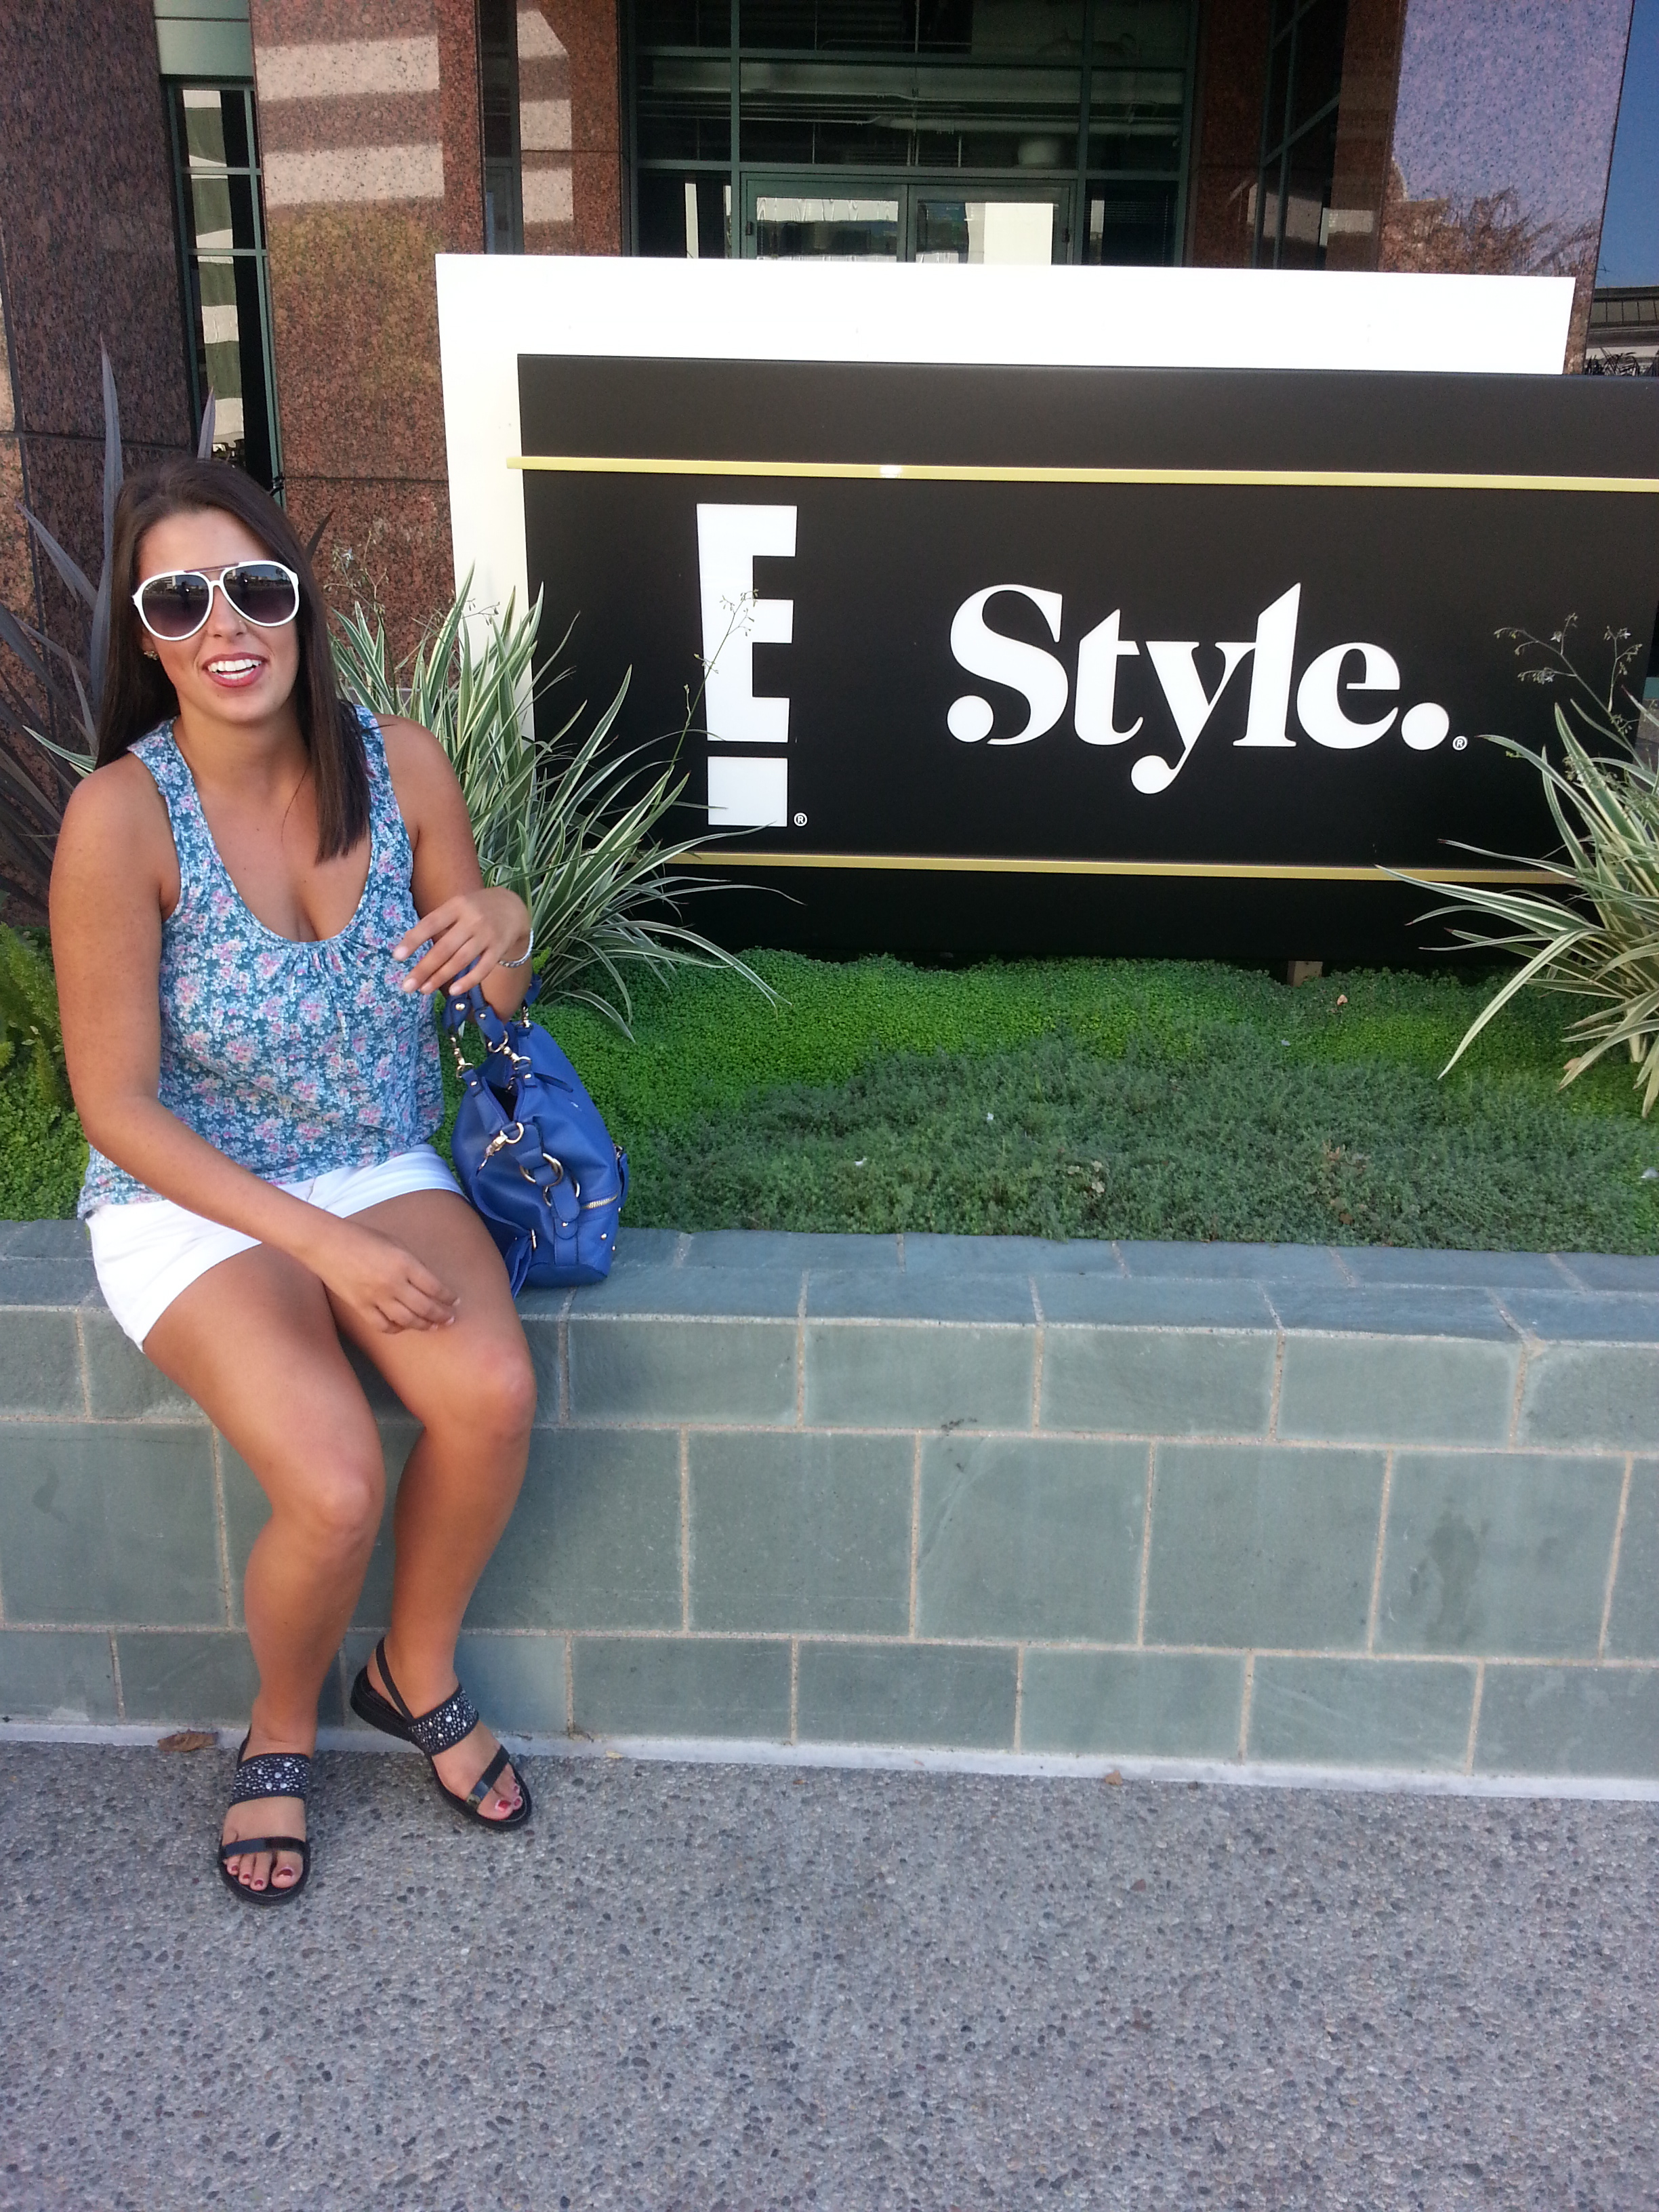 The day of my informational interview. My very first time at E!